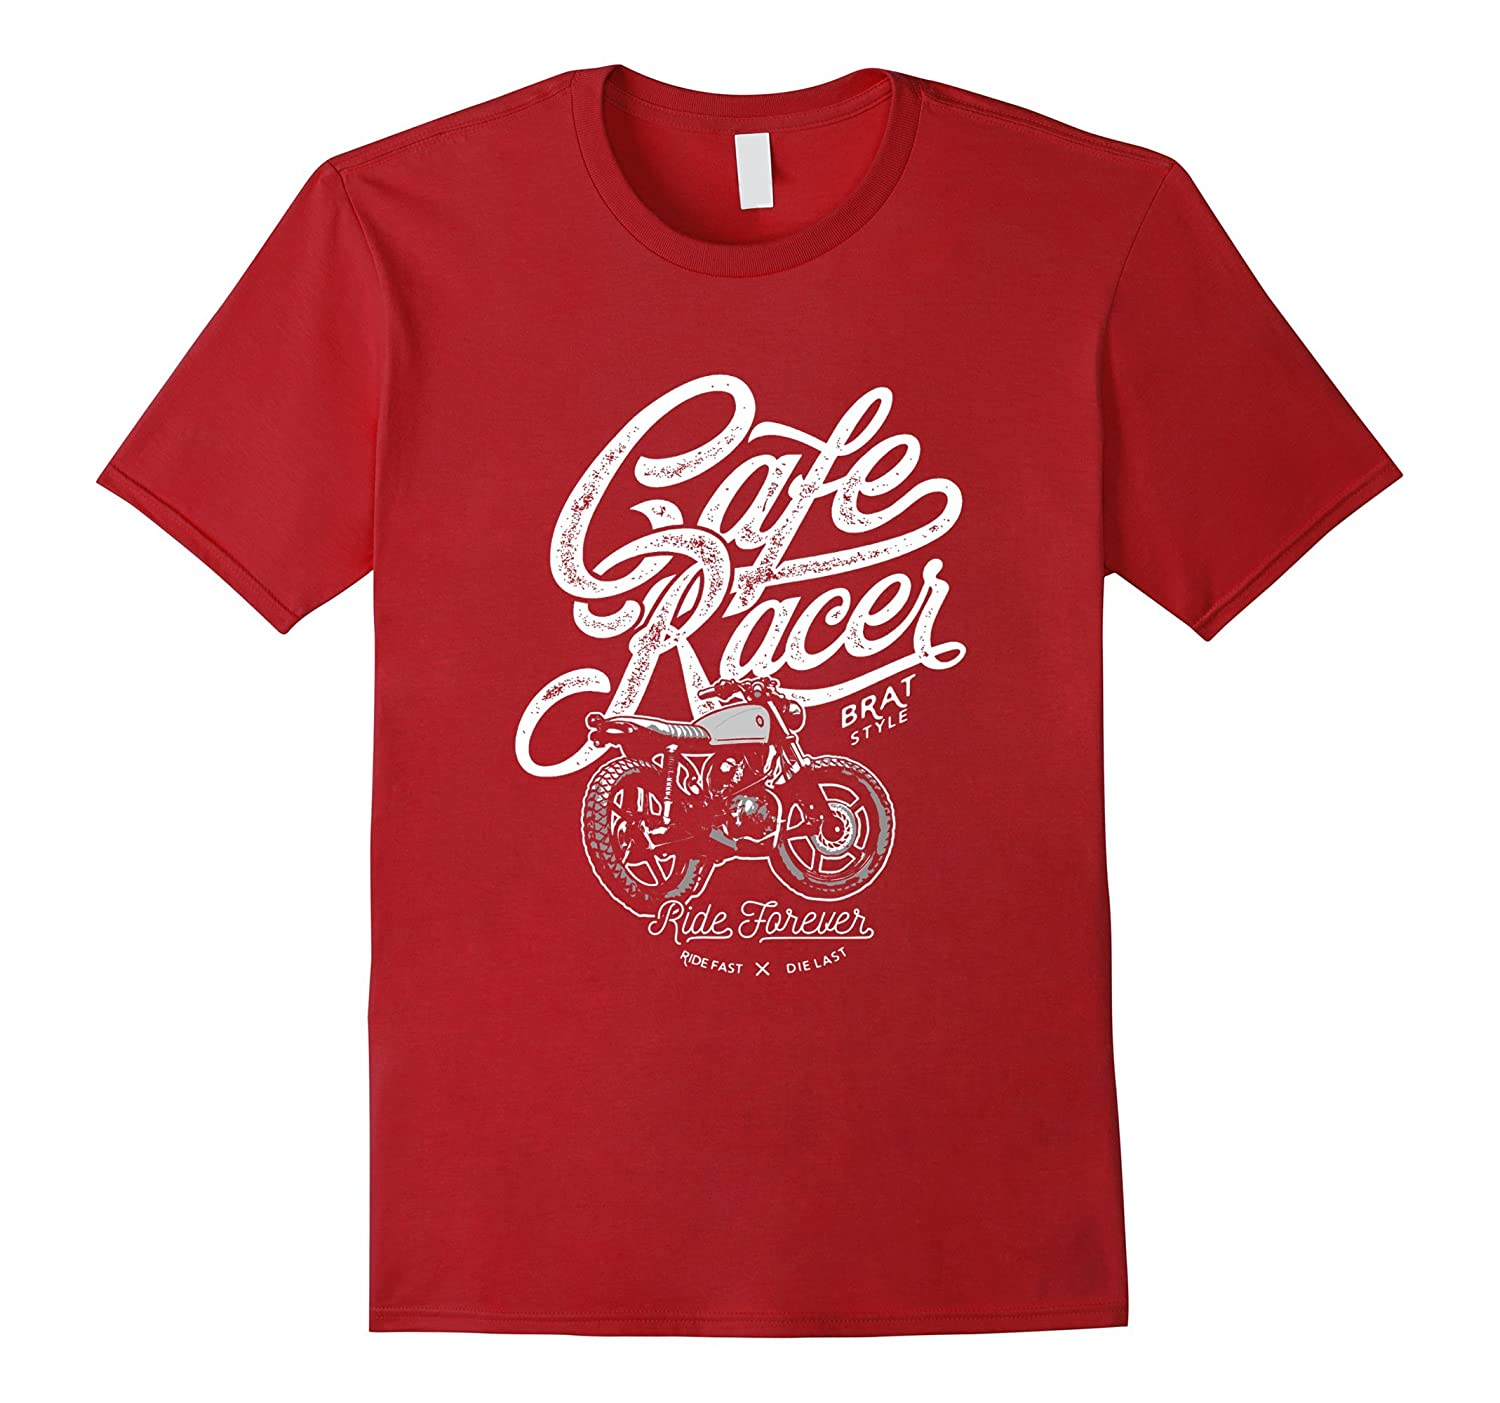 Cafe Racer, Ride Forever, Brat Style,-TH